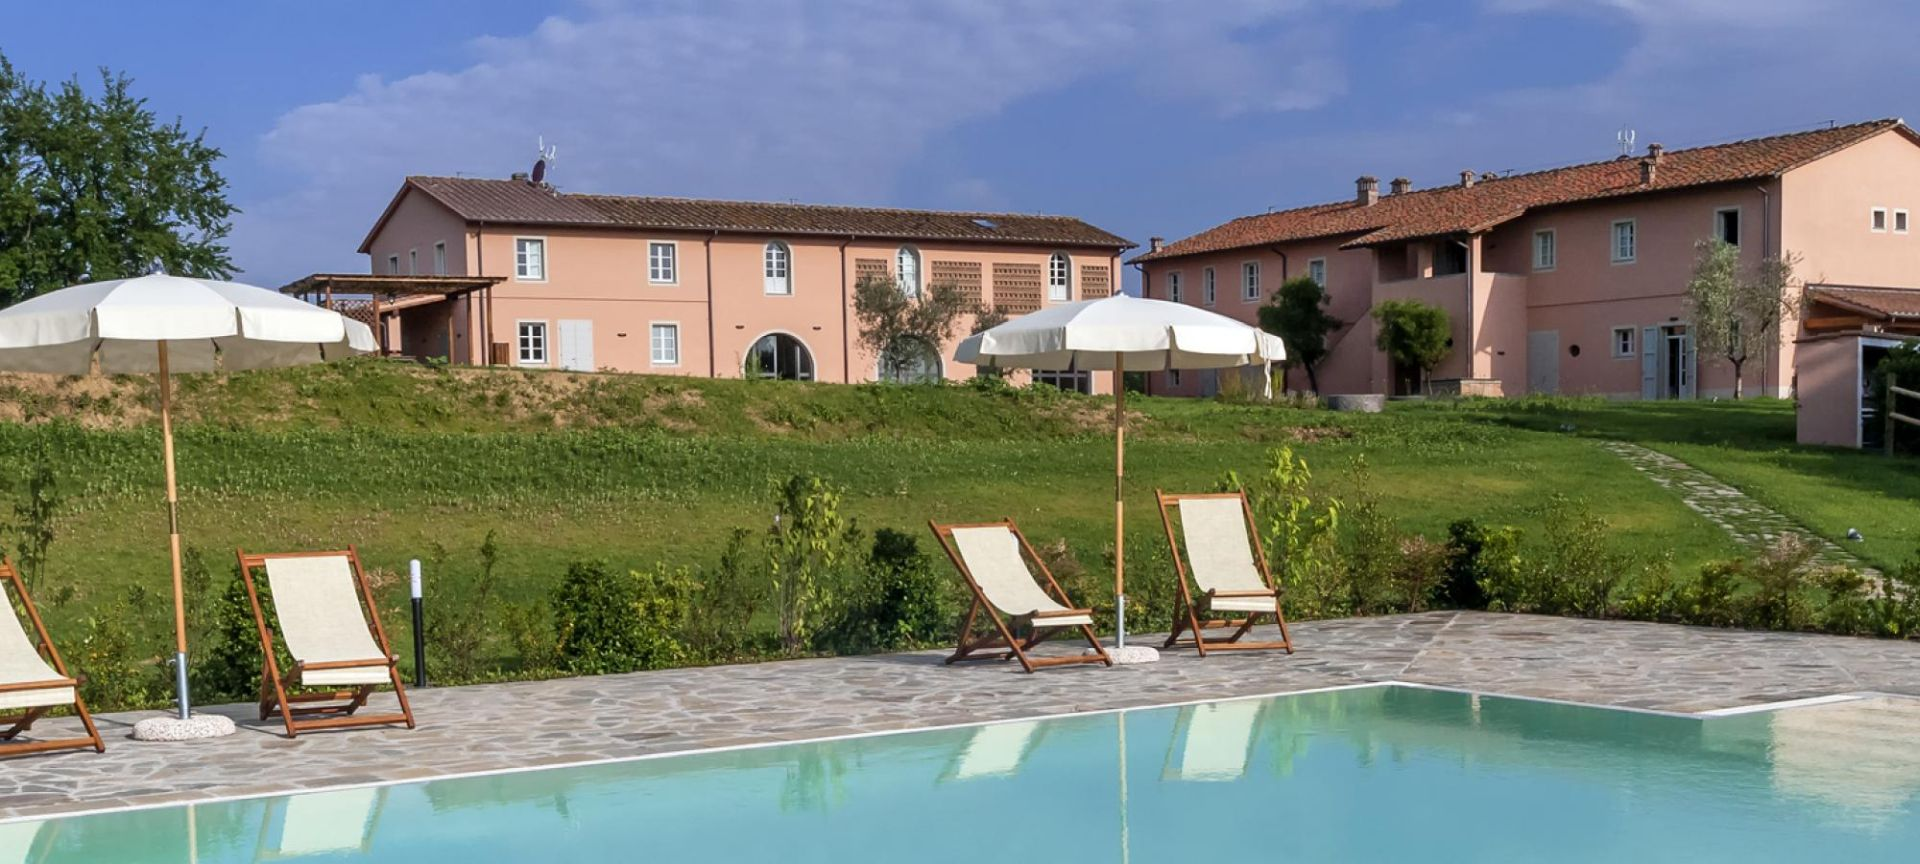 Le Sodole Country Resort A 2020